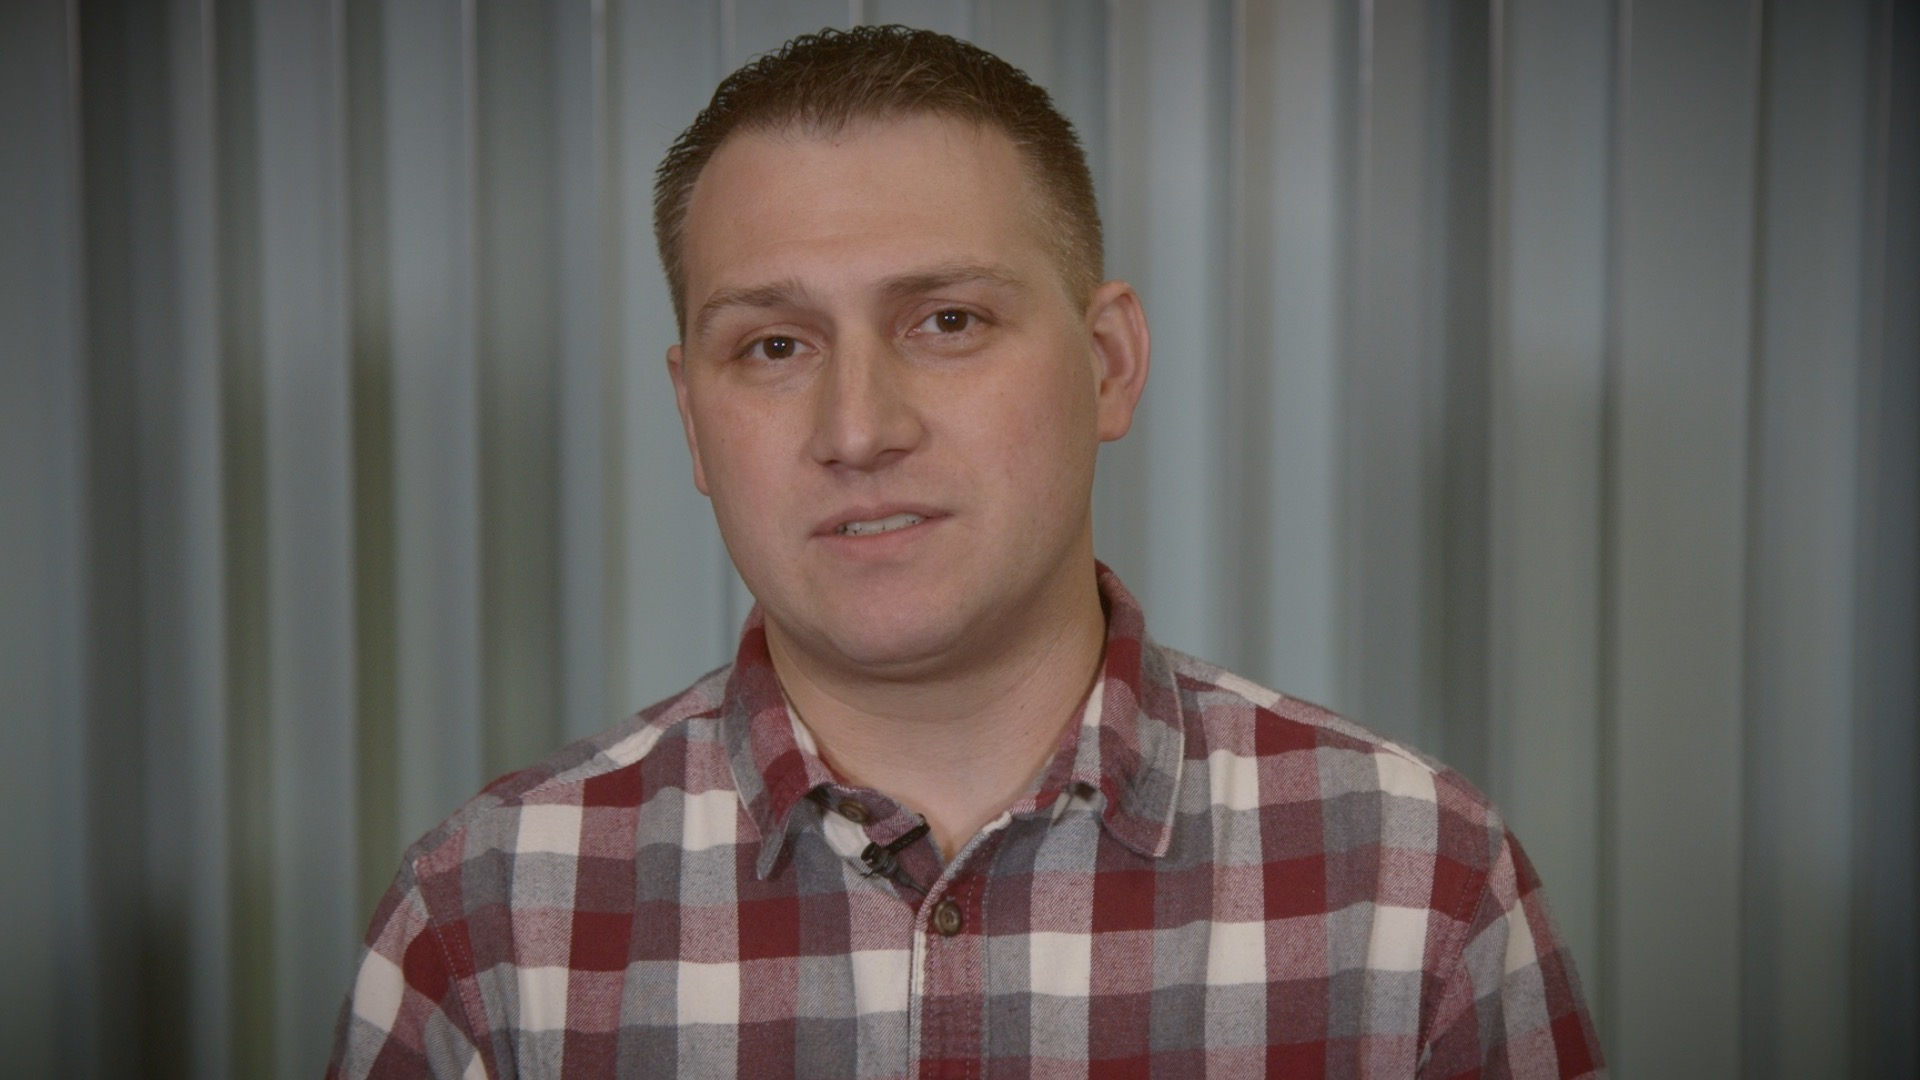 Tony DeHaven is an automation engineer for the support company Downland-Bach